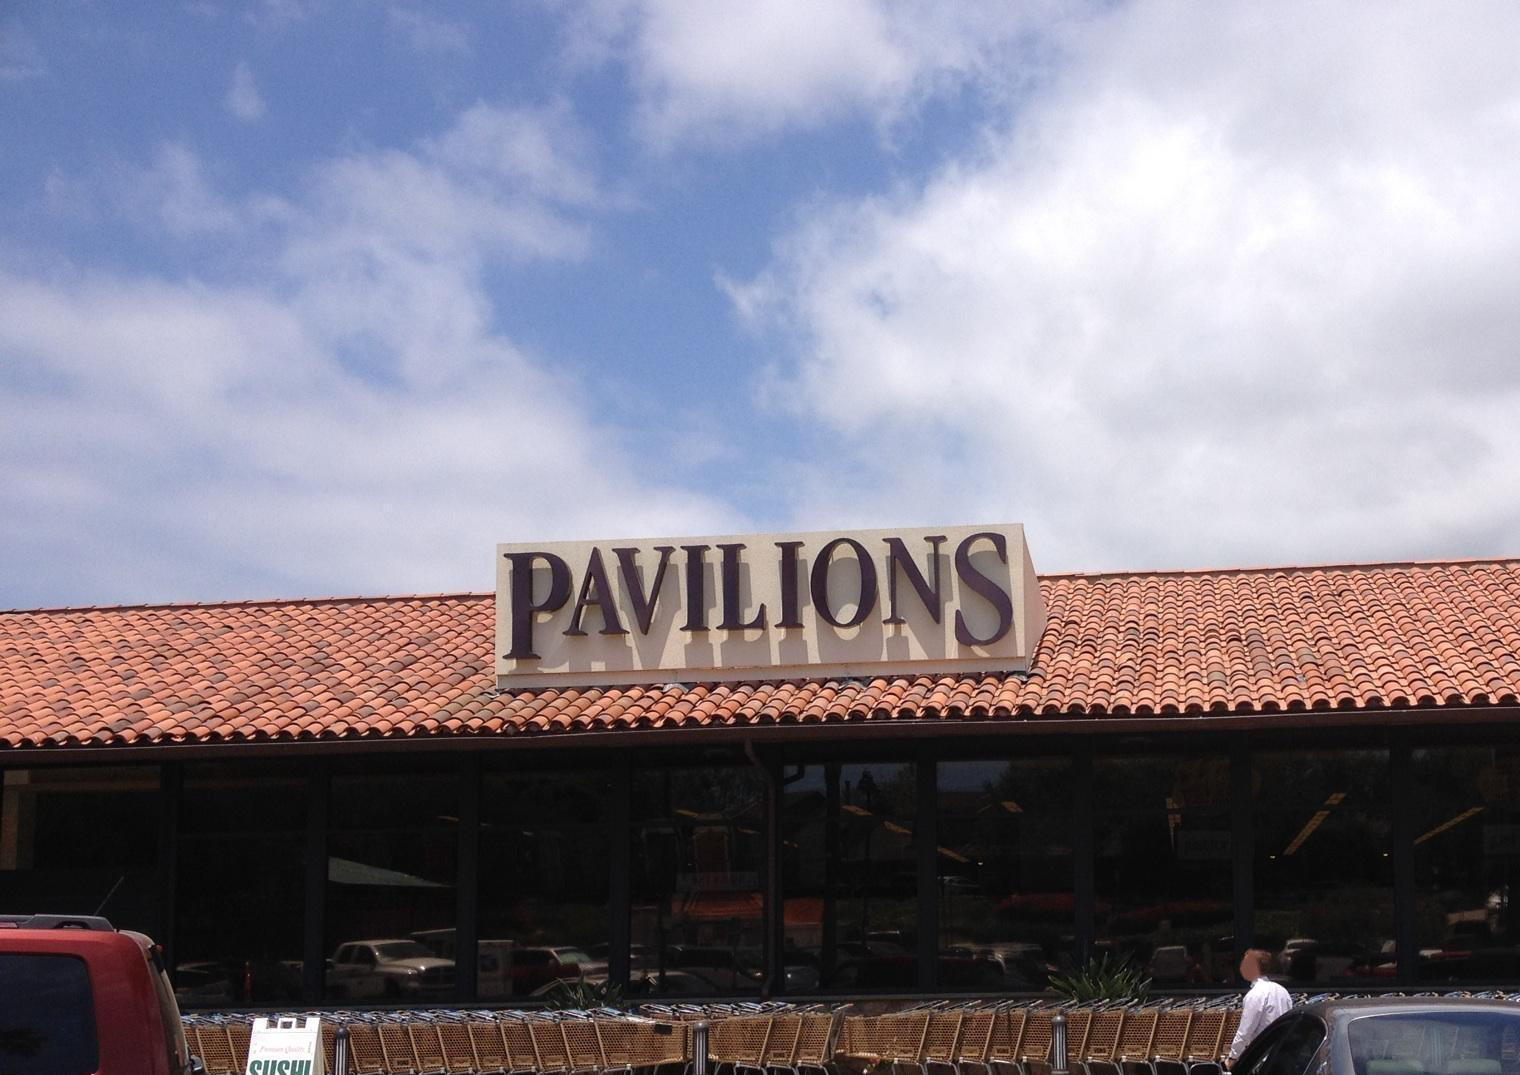 Pavilions store front picture at 29211 Heathercliff Rd in Malibu CA